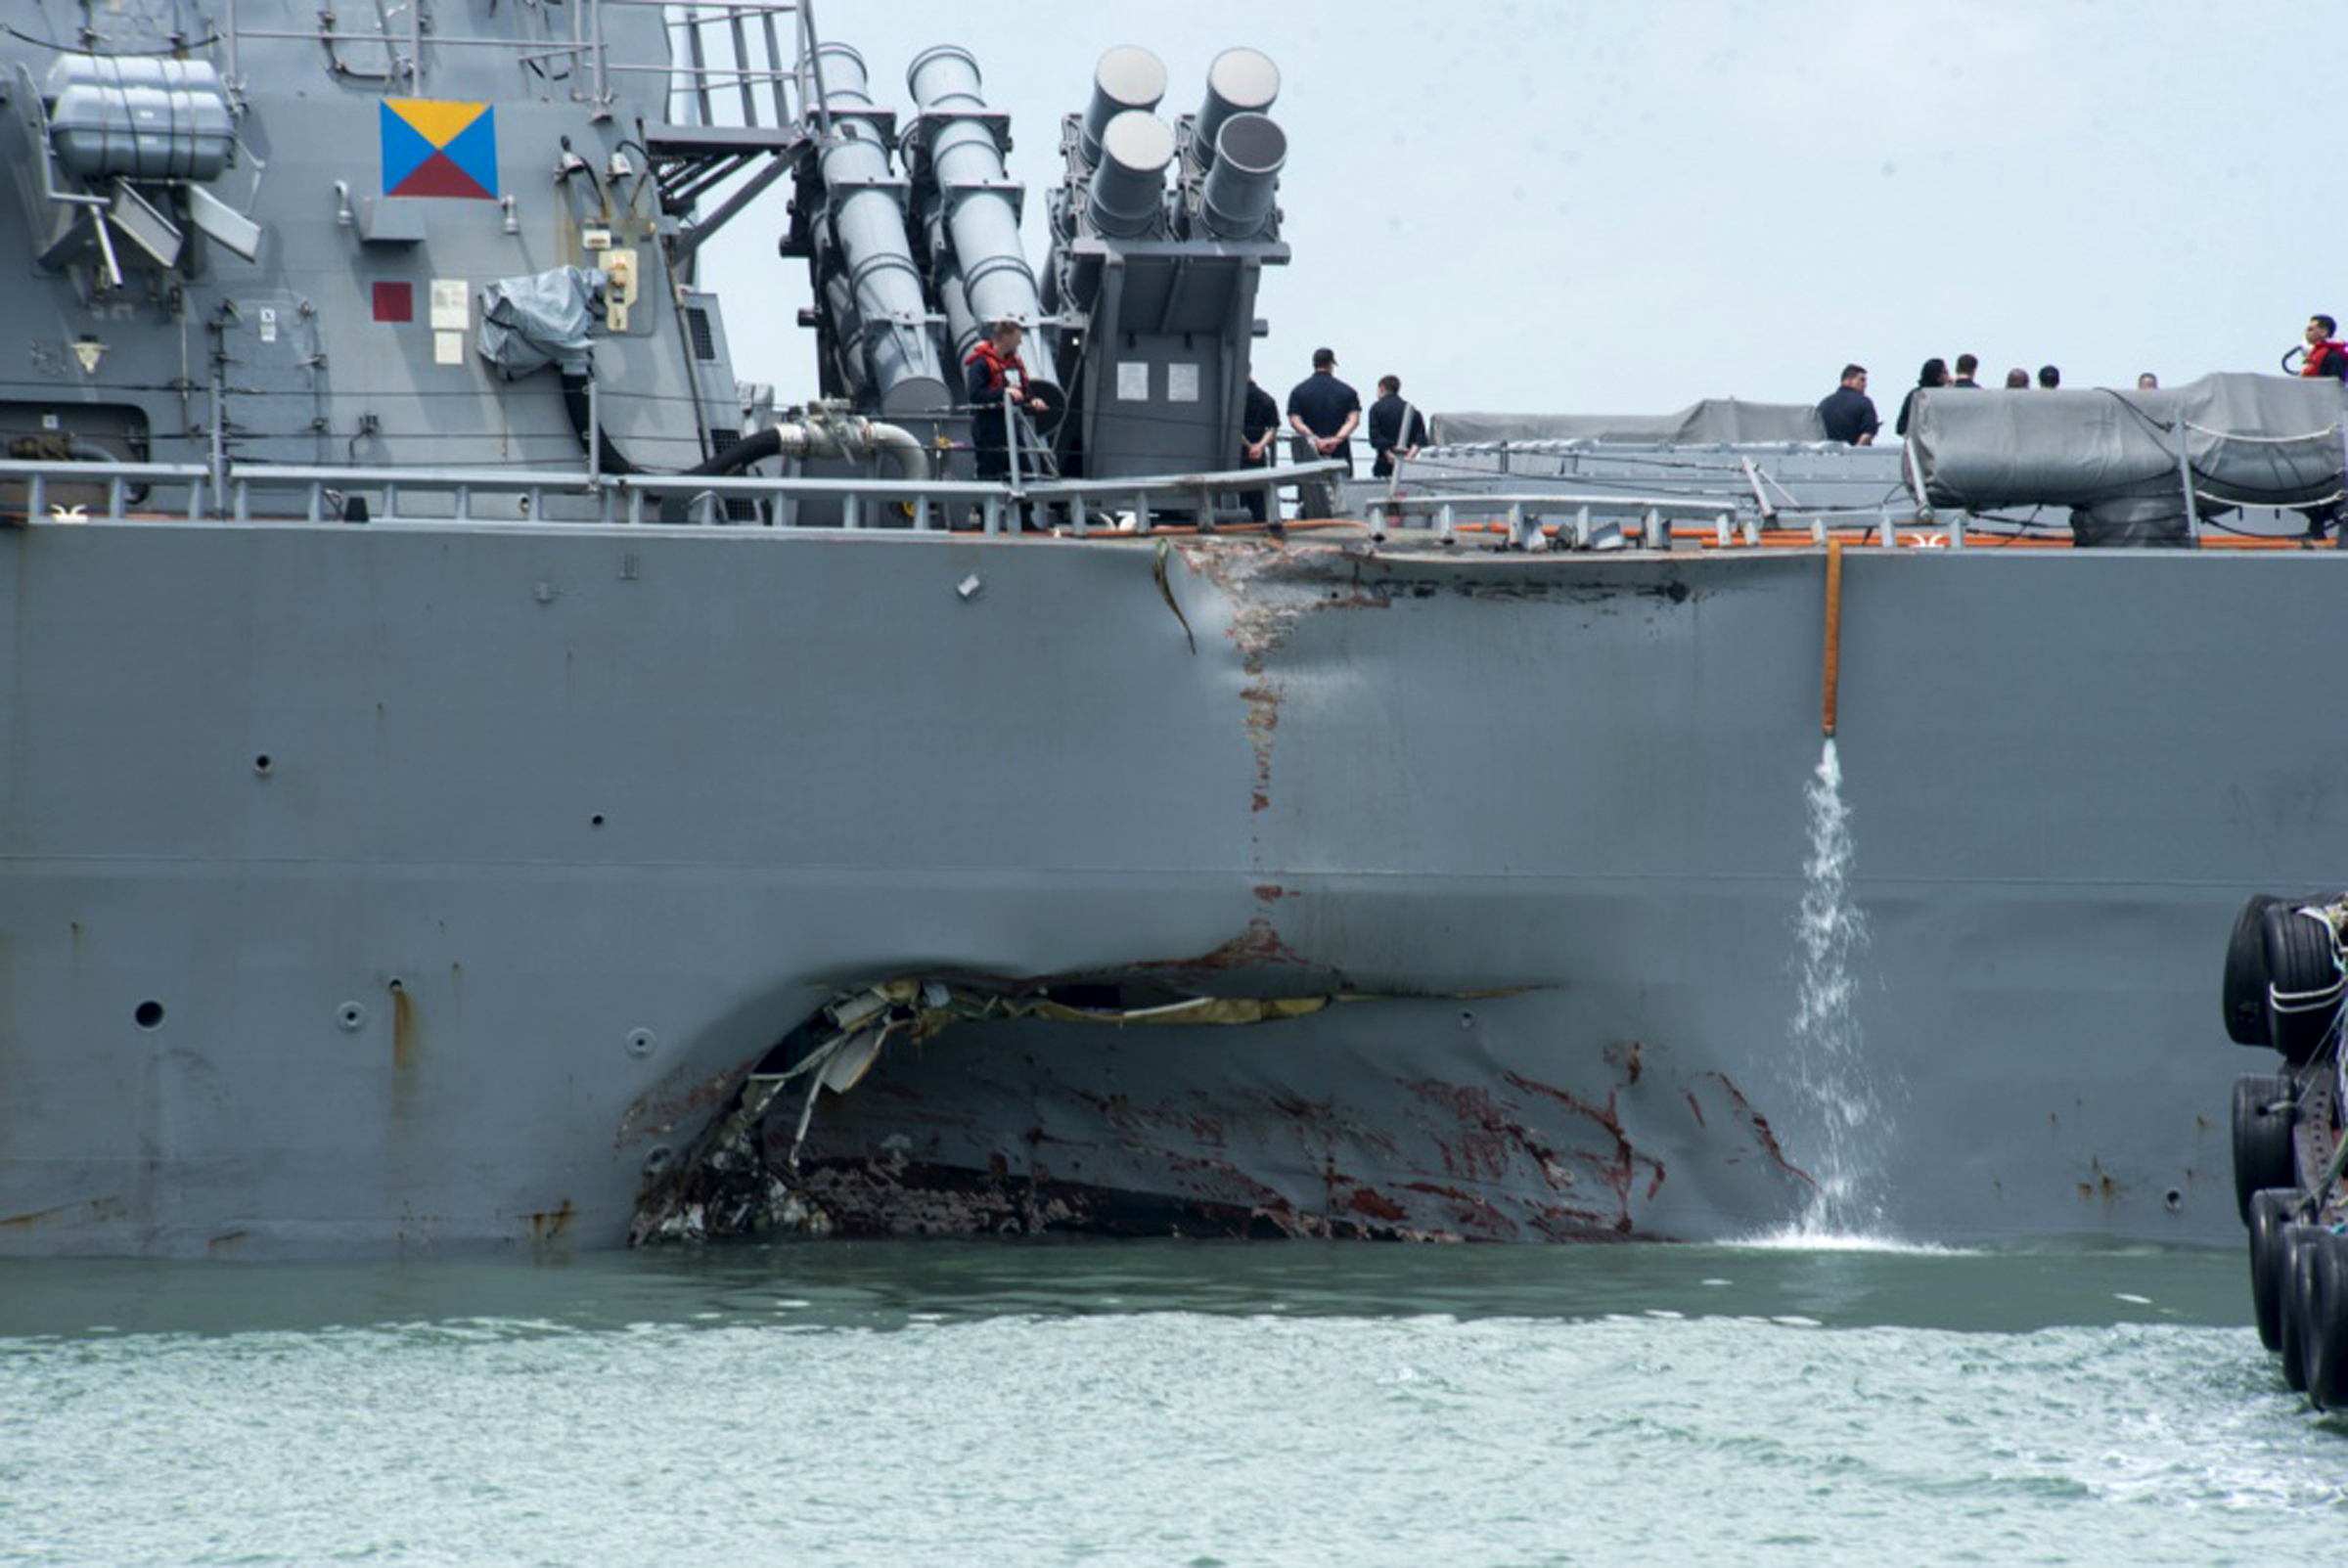 """APTOPIX Singapore US Navy Ship Collision Damage to the portside is visible as the Guided-missile destroyer USS John S. McCain (DDG 56) steers towards Changi naval base in Singapore following a collision with the merchant vessel Alnic MC Monday, Aug. 21, 2017. The USS John S. McCain was docked at Singapore's naval base with """"significant damage"""" to its hull after an early morning collision with the Alnic MC as vessels from several nations searched Monday for missing U.S. sailors. (Mass Communication Specialist 2nd Class Joshua Fulton/U.S. Navy photo via AP)"""